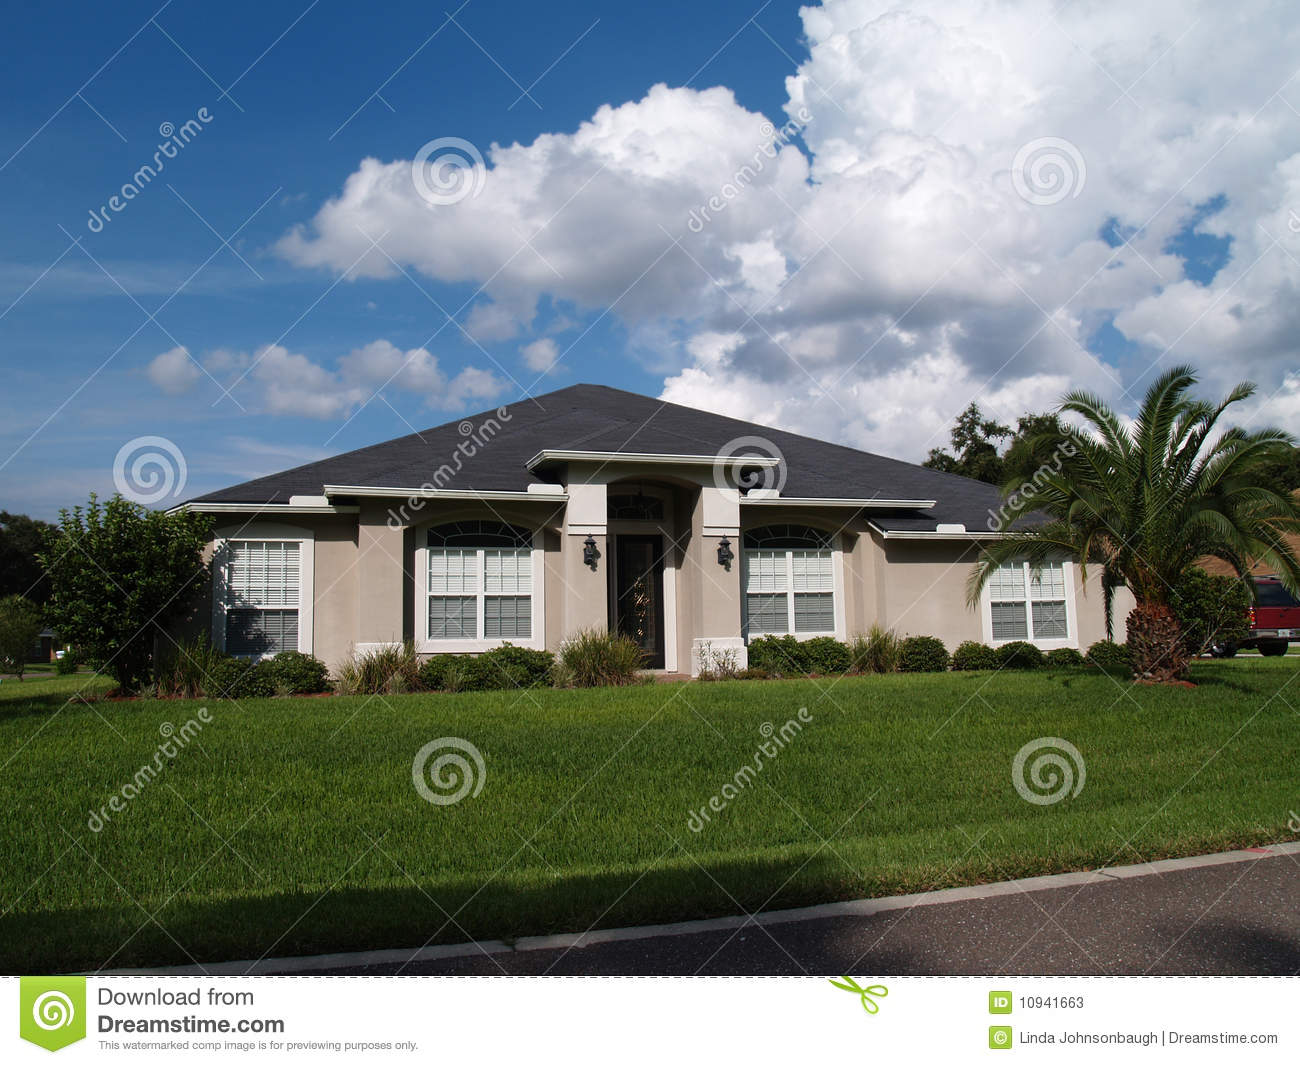 One story florida stucco home stock photos image 10941663 for Florida stucco